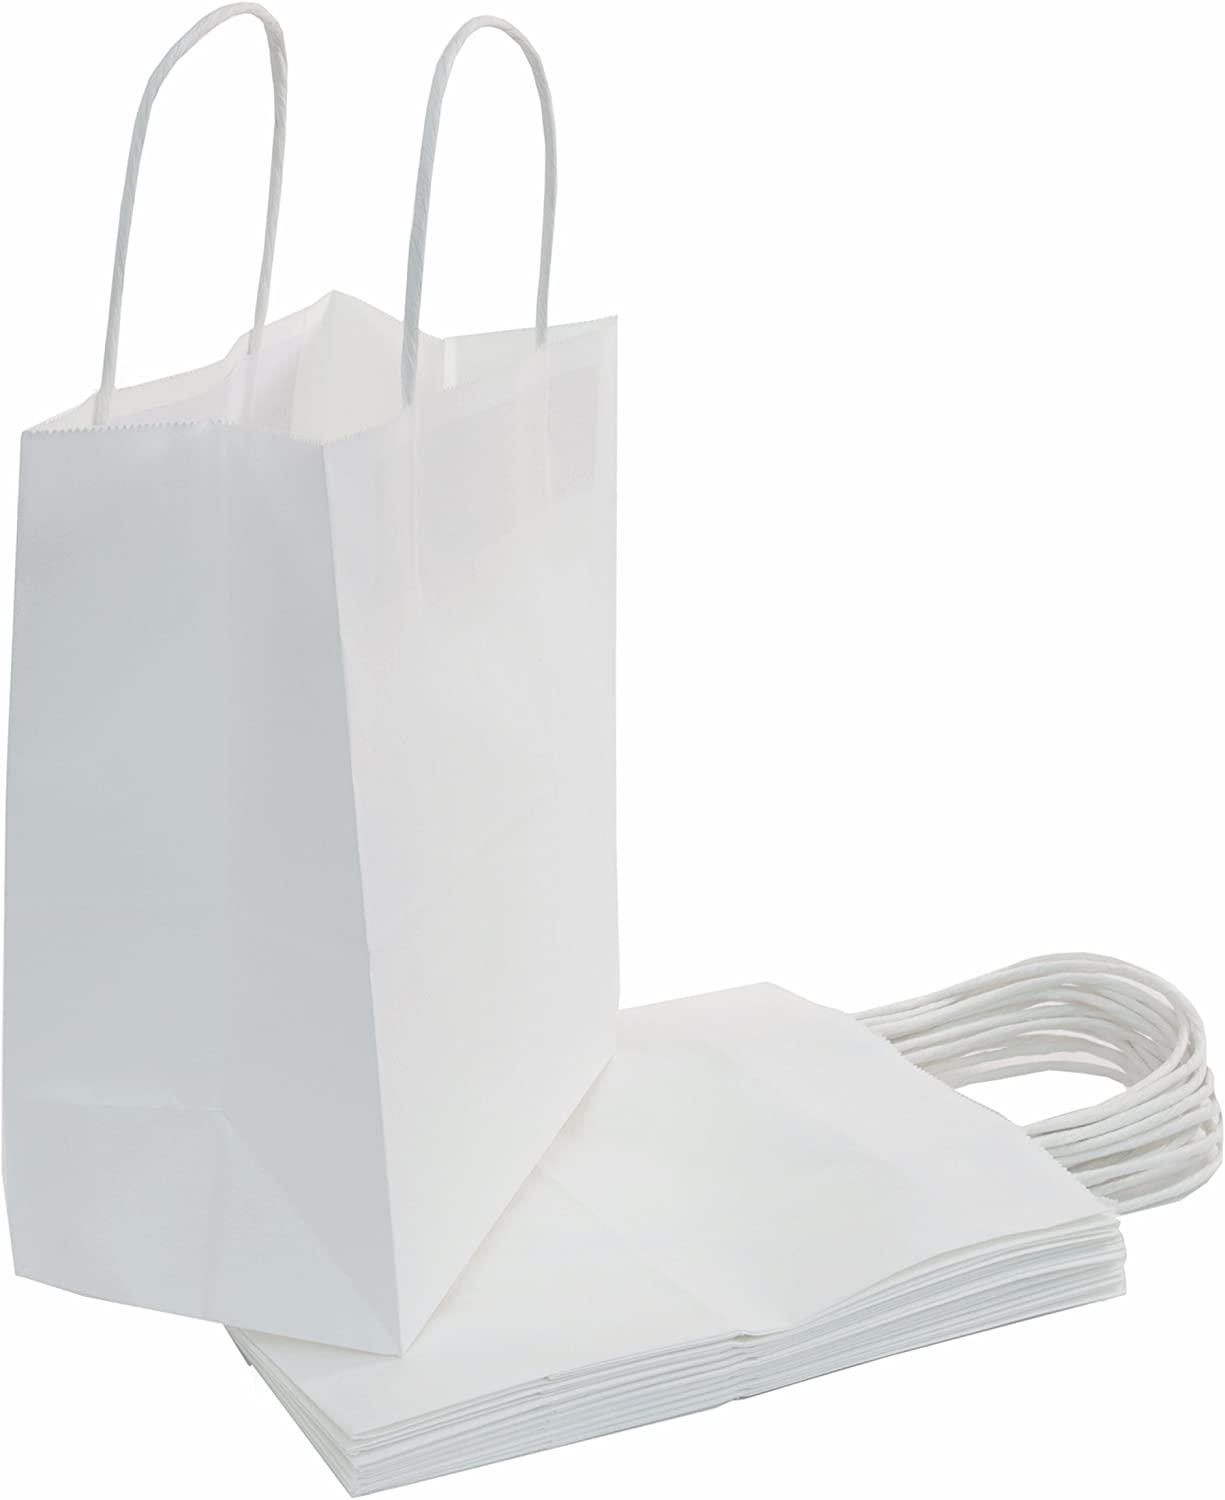 "100 | 50 | 25 Count - Size (8""x4.75""x10"") Bulk White Paper Bags with Handles - Perfect Solution for Baby Shower, Birthday Parties, Gifts, Restaurant takeouts, Shopping, Retail"